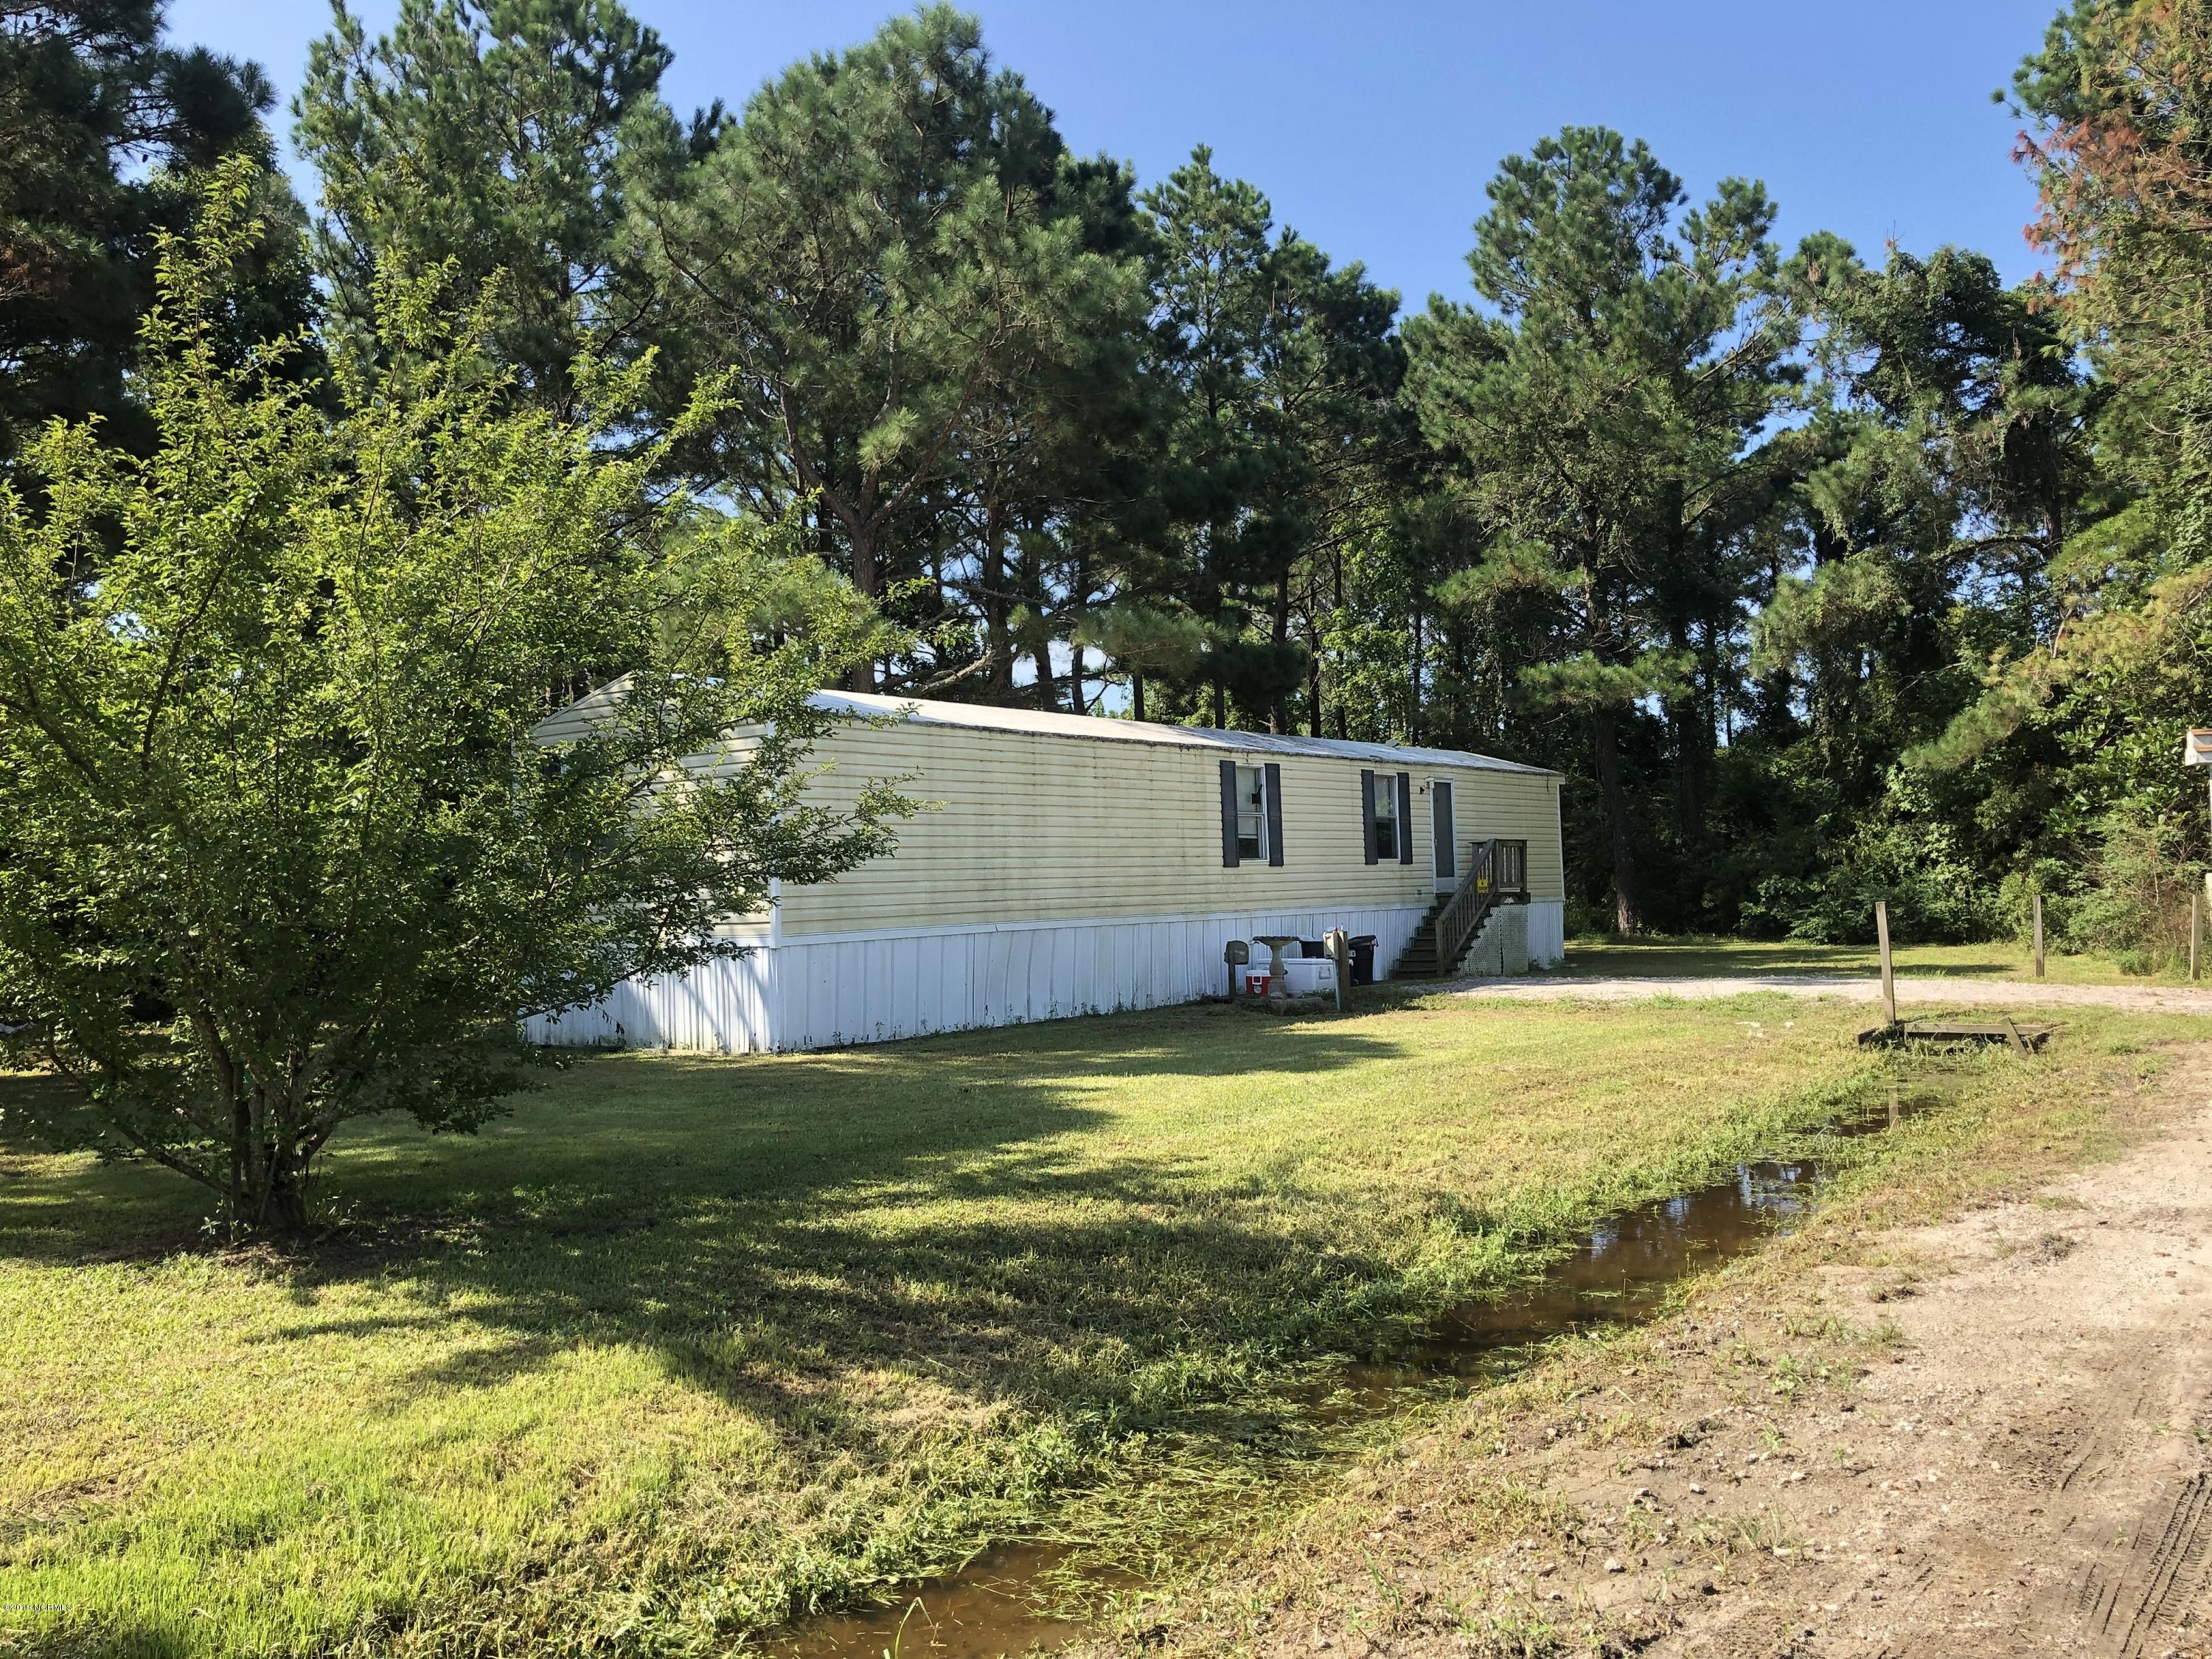 410 Highway 70, Bettie, North Carolina 28516, ,Mobile home park,For sale,Highway 70,100187724